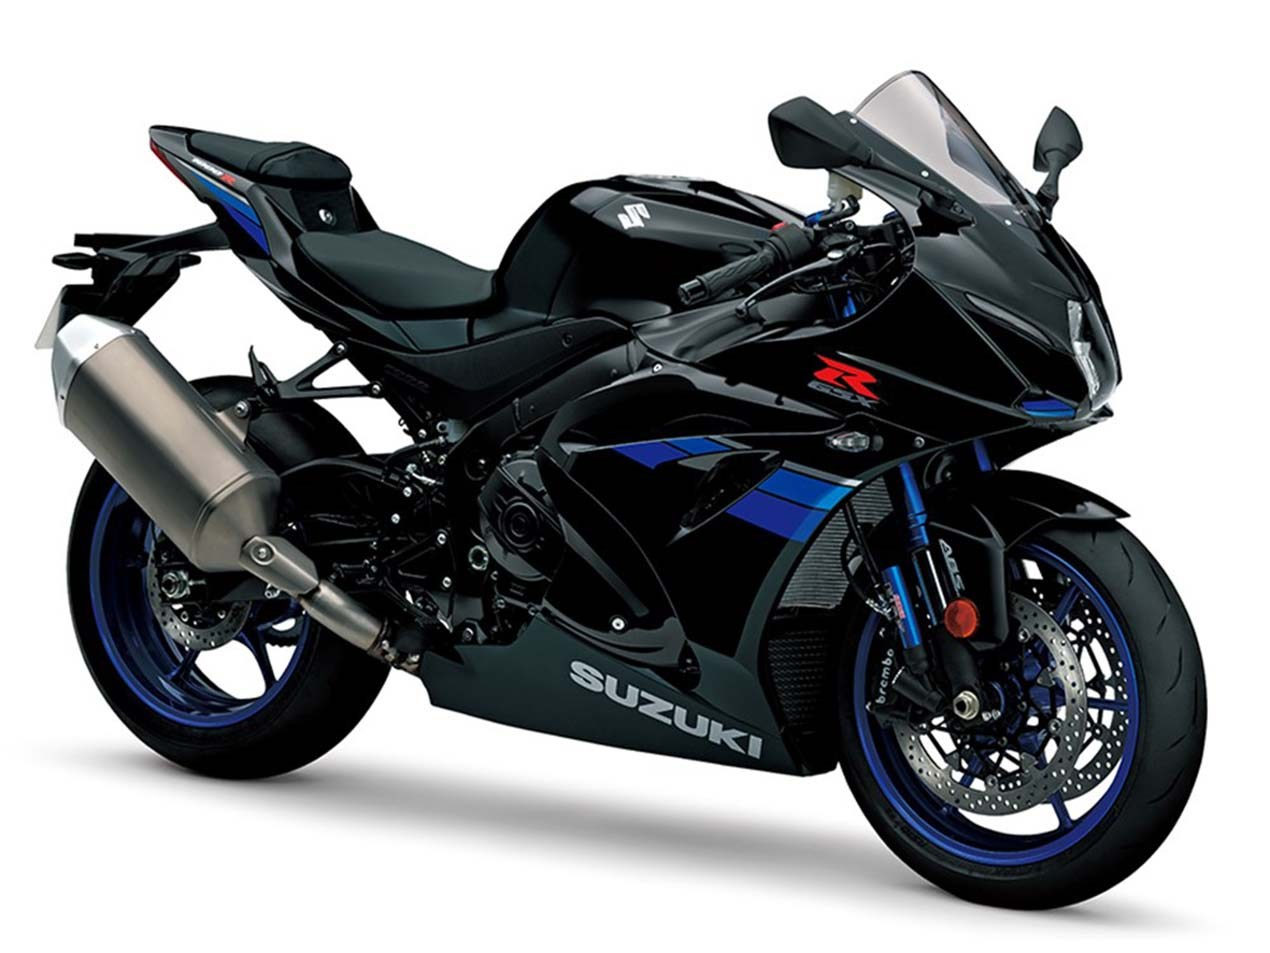 Suzuki gsx-r photo - 4